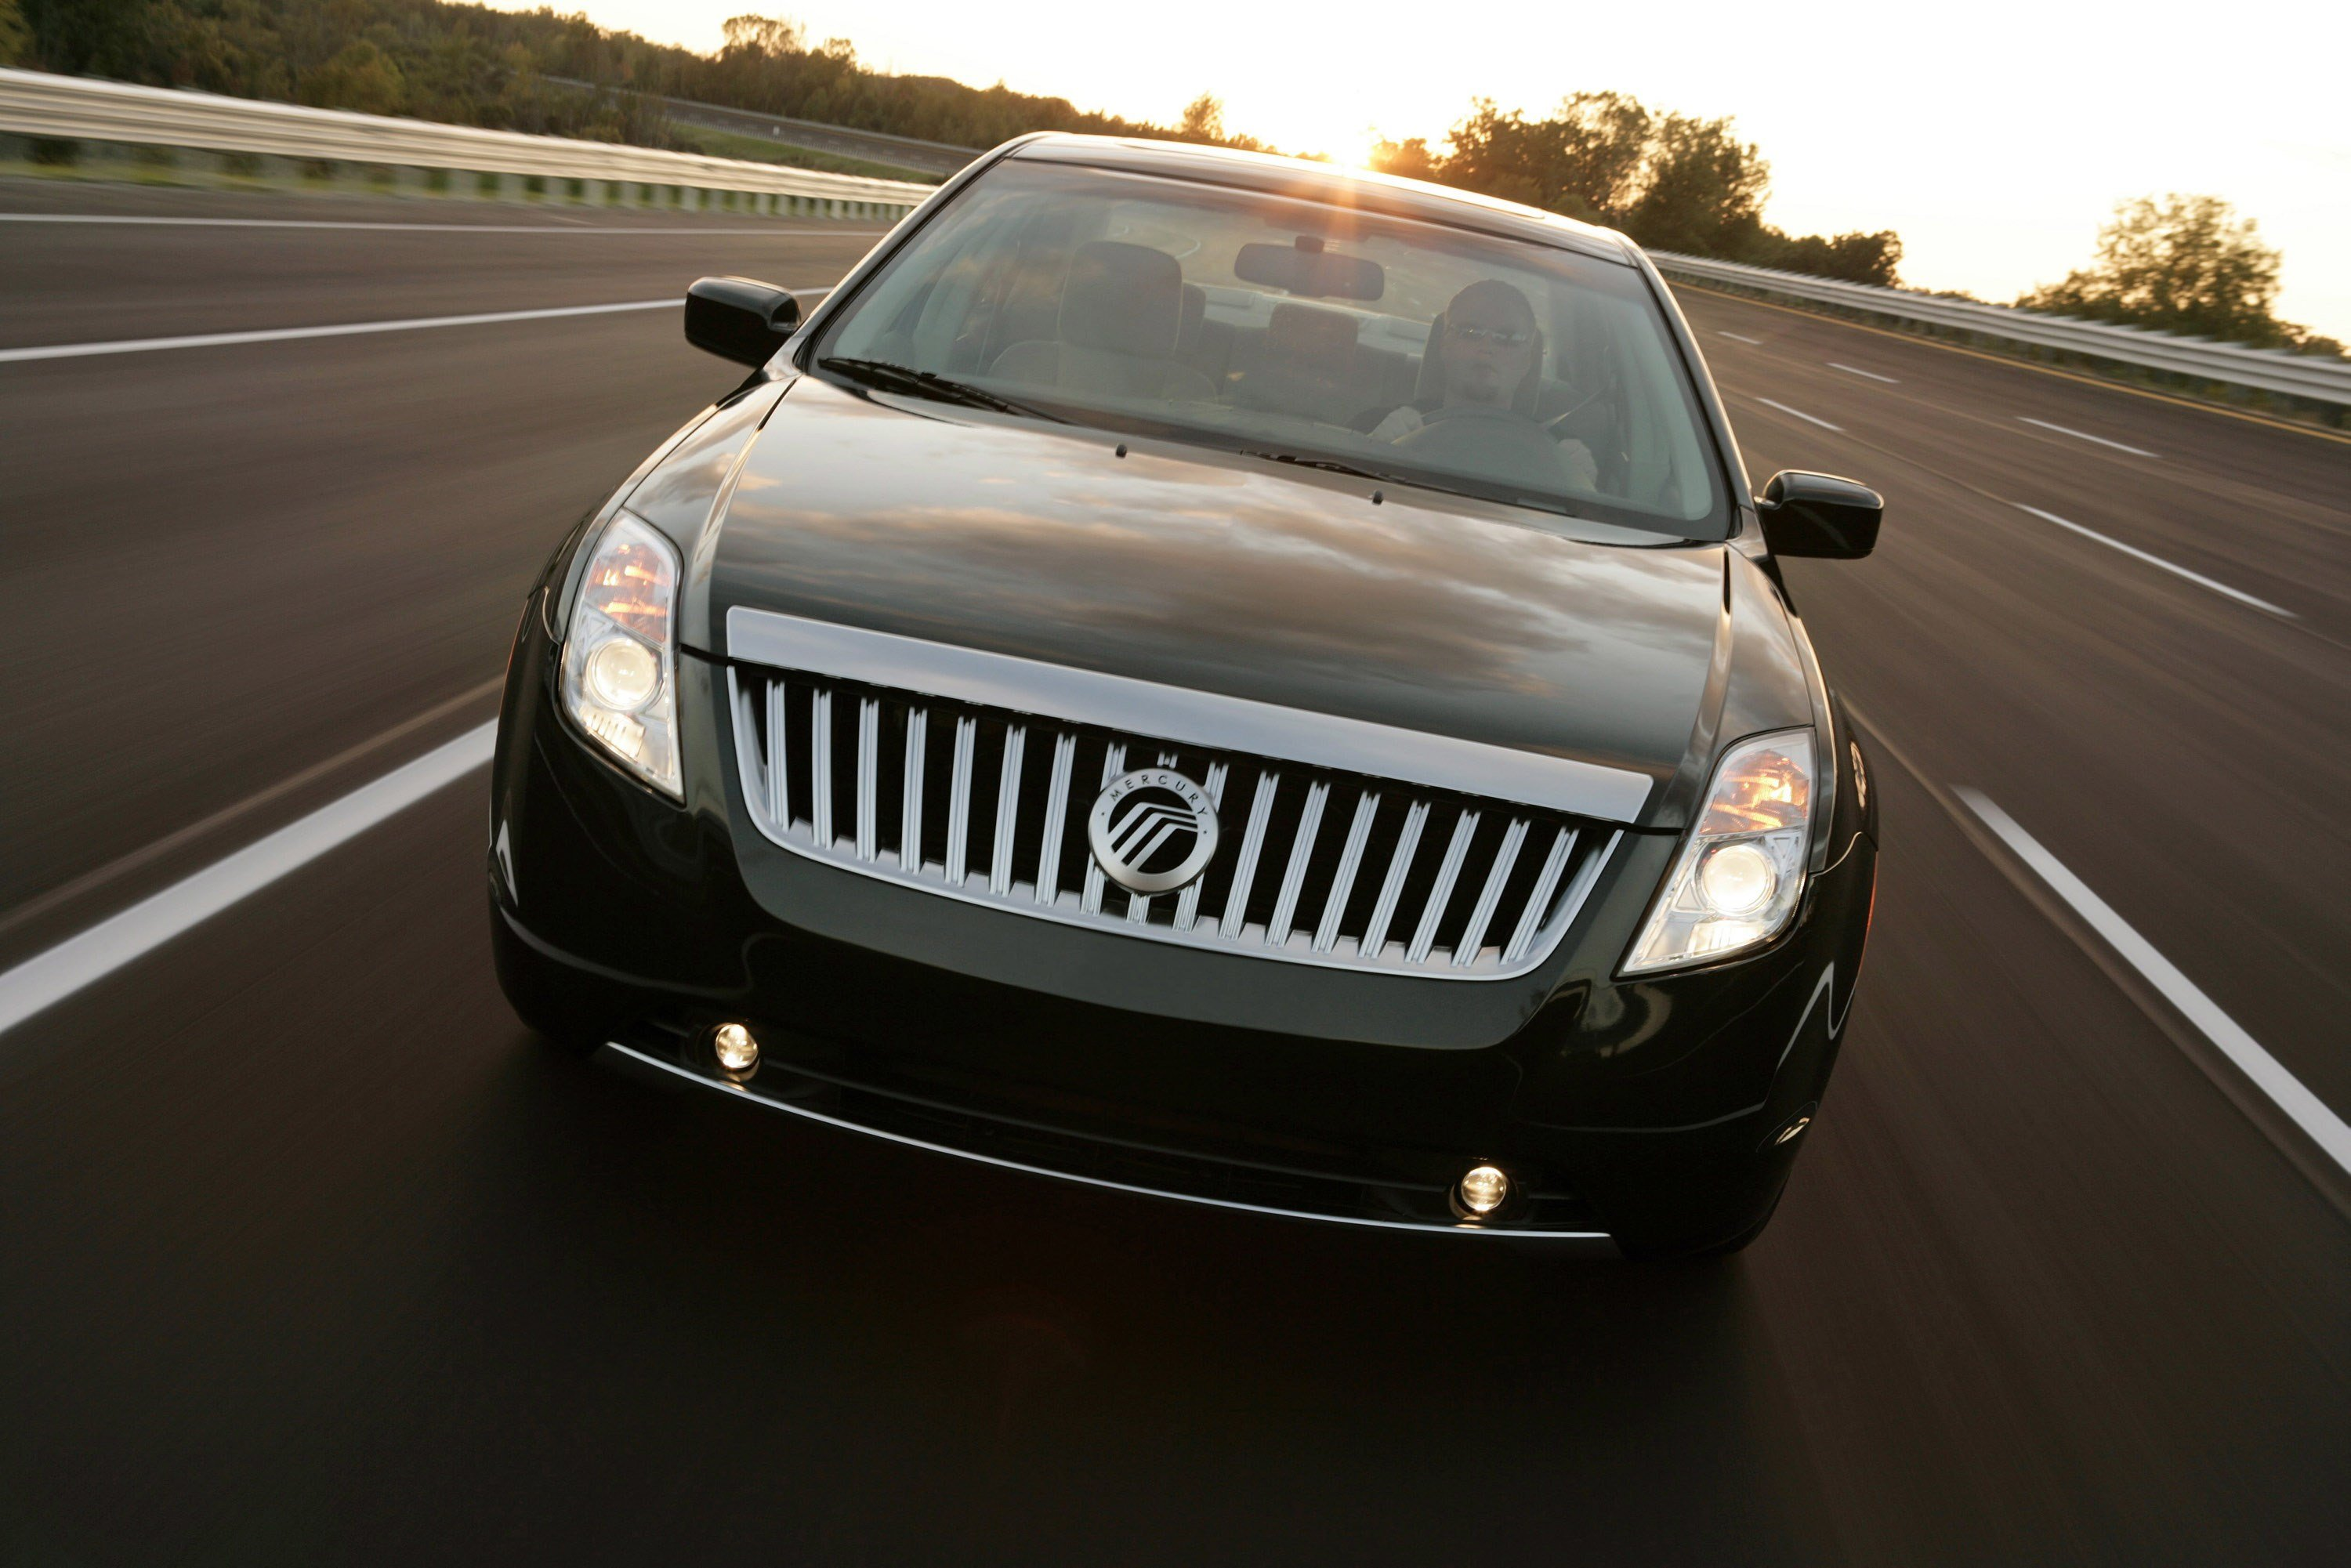 Latest 2010 Mercury Milan Picture 10854 Free Download